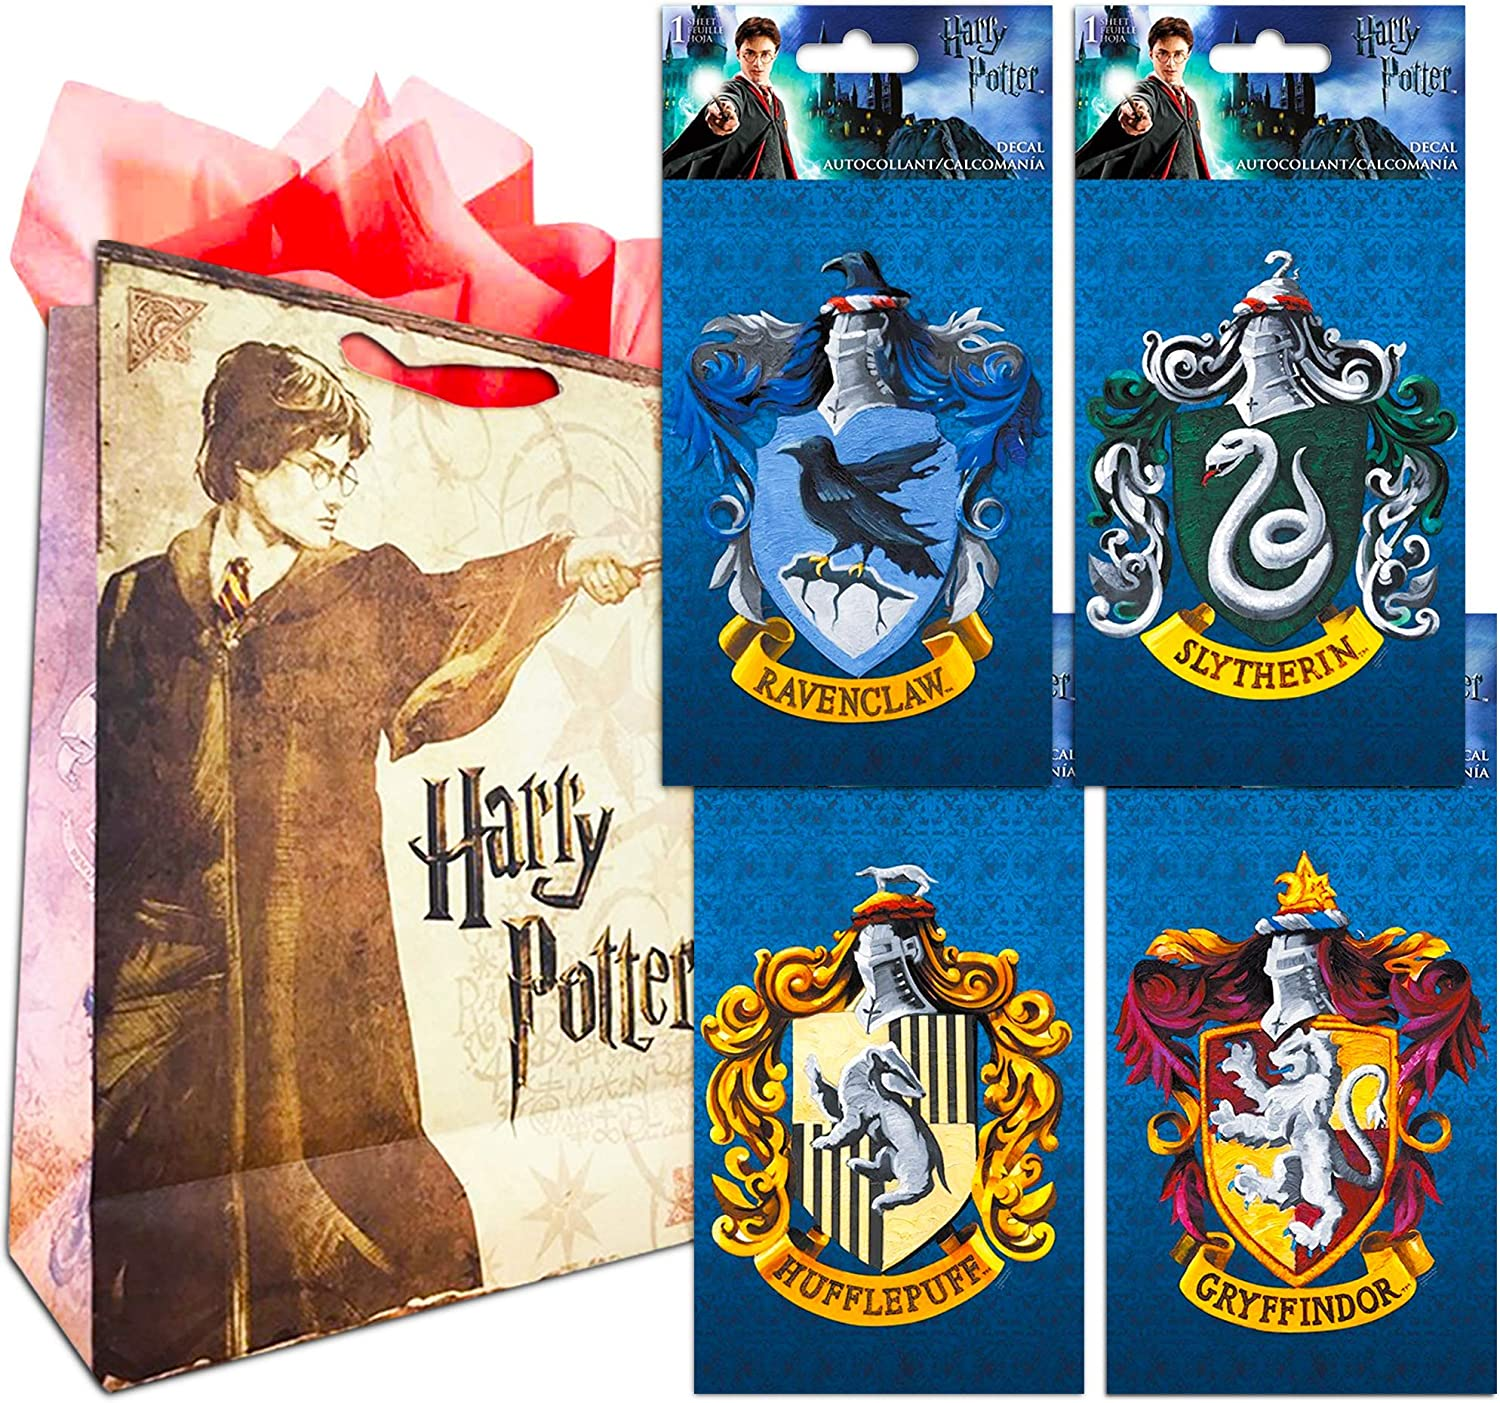 Harry Potter Decal Sticker Super Set ~ Bundle of 4 Premium Harry Potter Stickers for Room Decor, Car, Laptop (All 4 Hogwarts Houses with Bonus Party Bag)